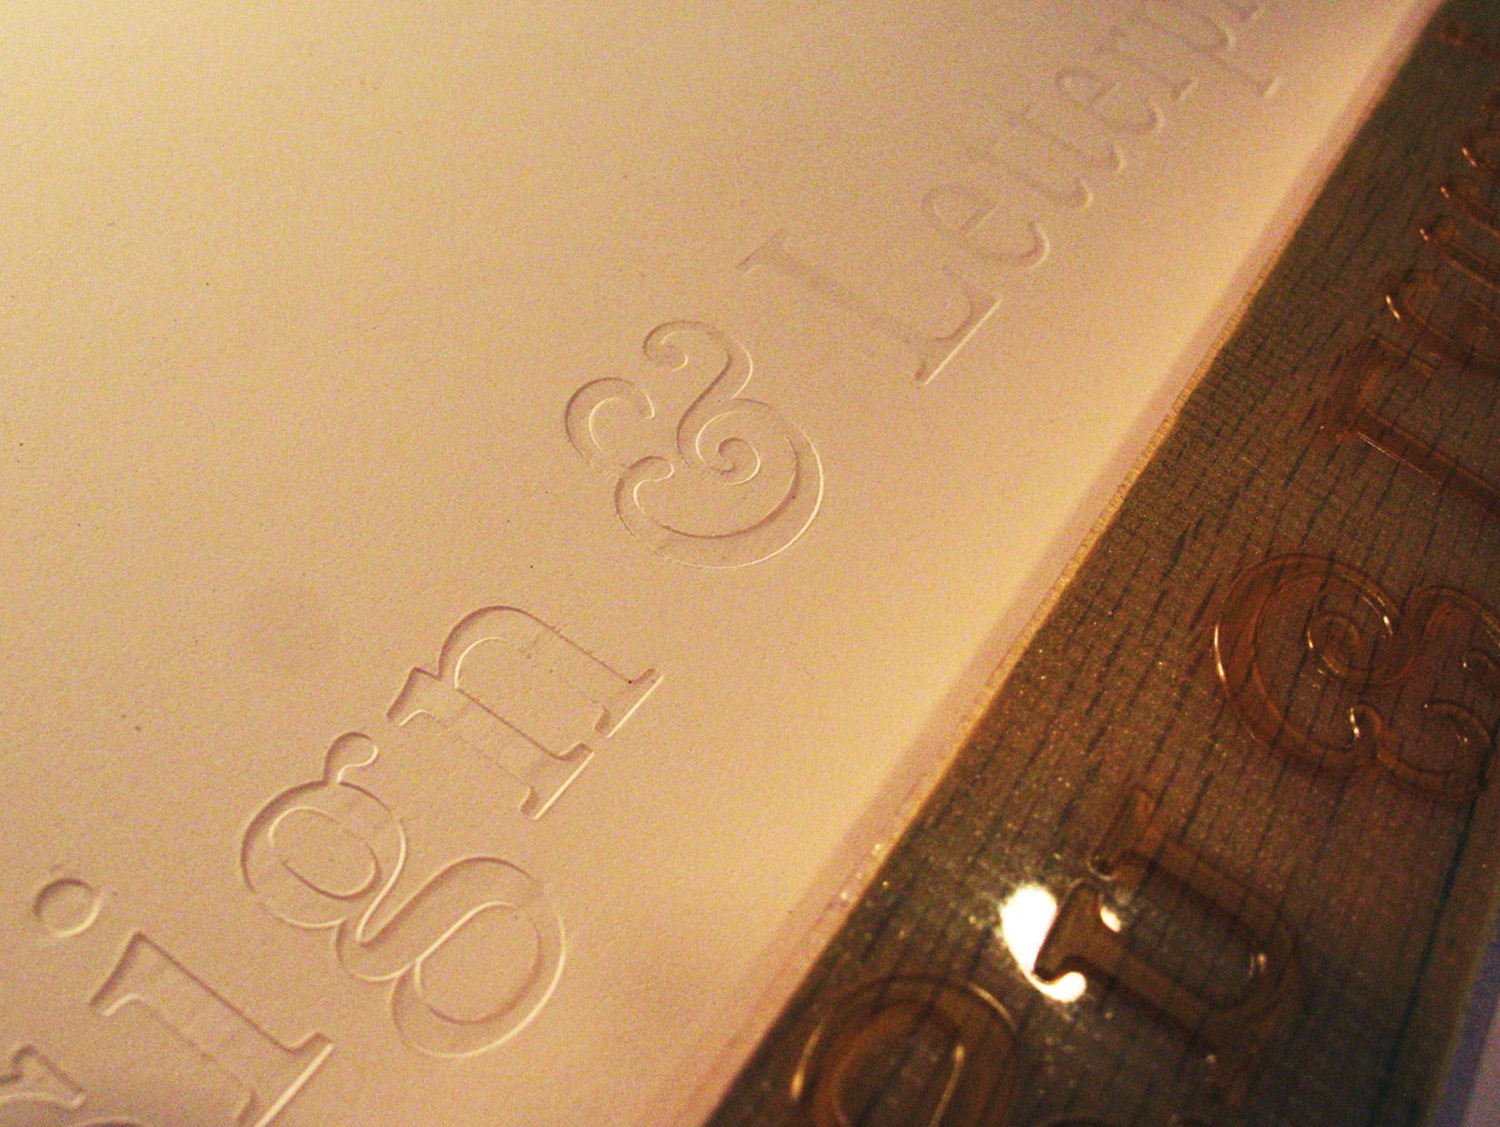 0-Studio-On-Fire-Letterpress-Sign-09.jpg